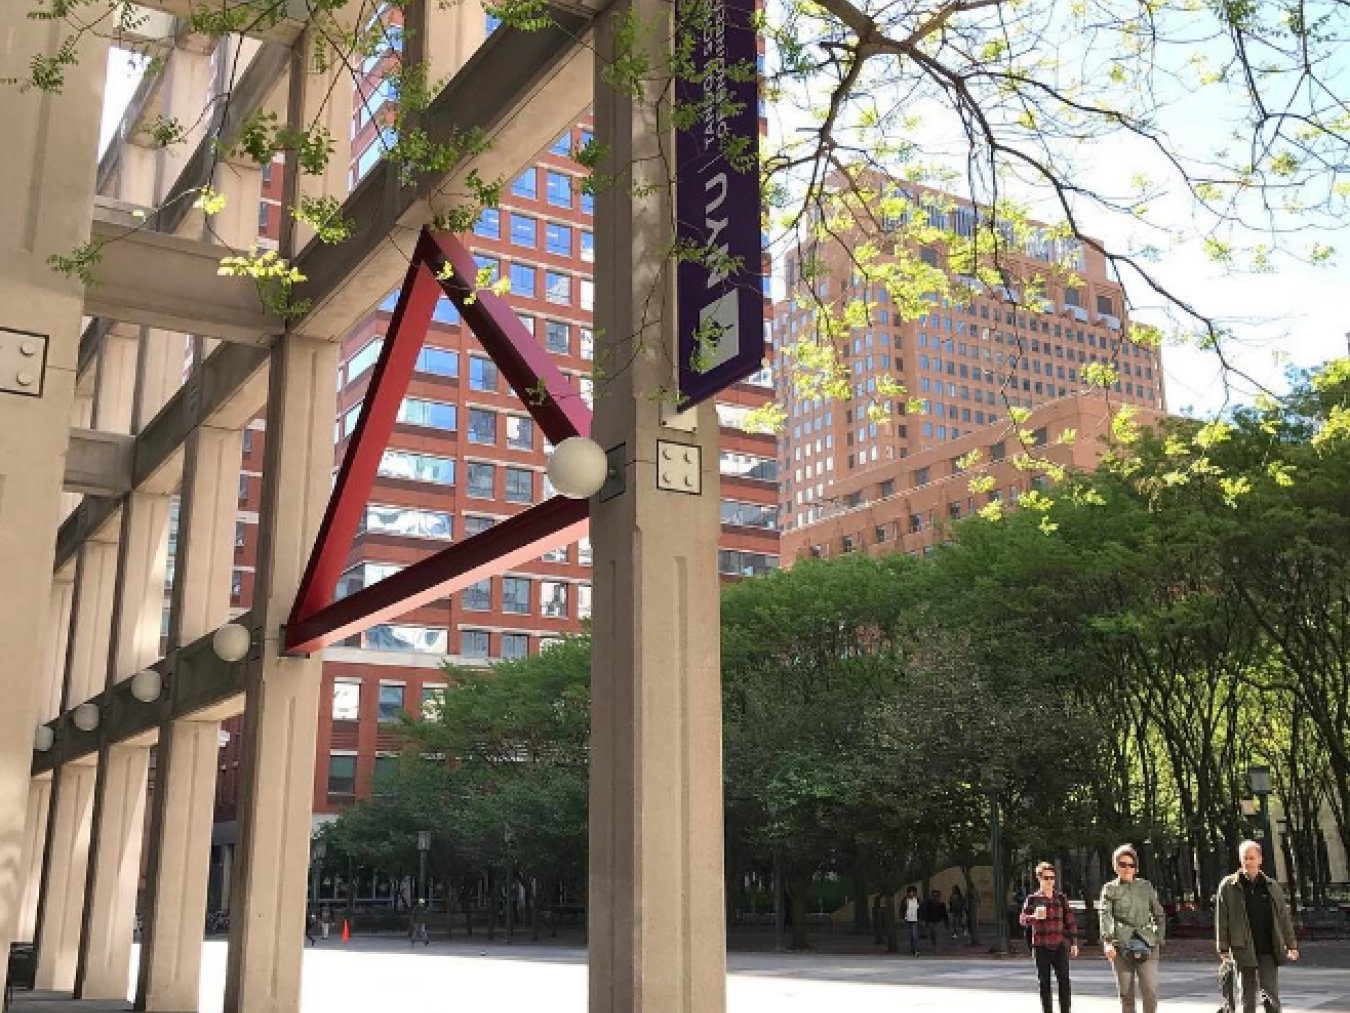 NYU Tandon campus. Photo via NYU Tandon.